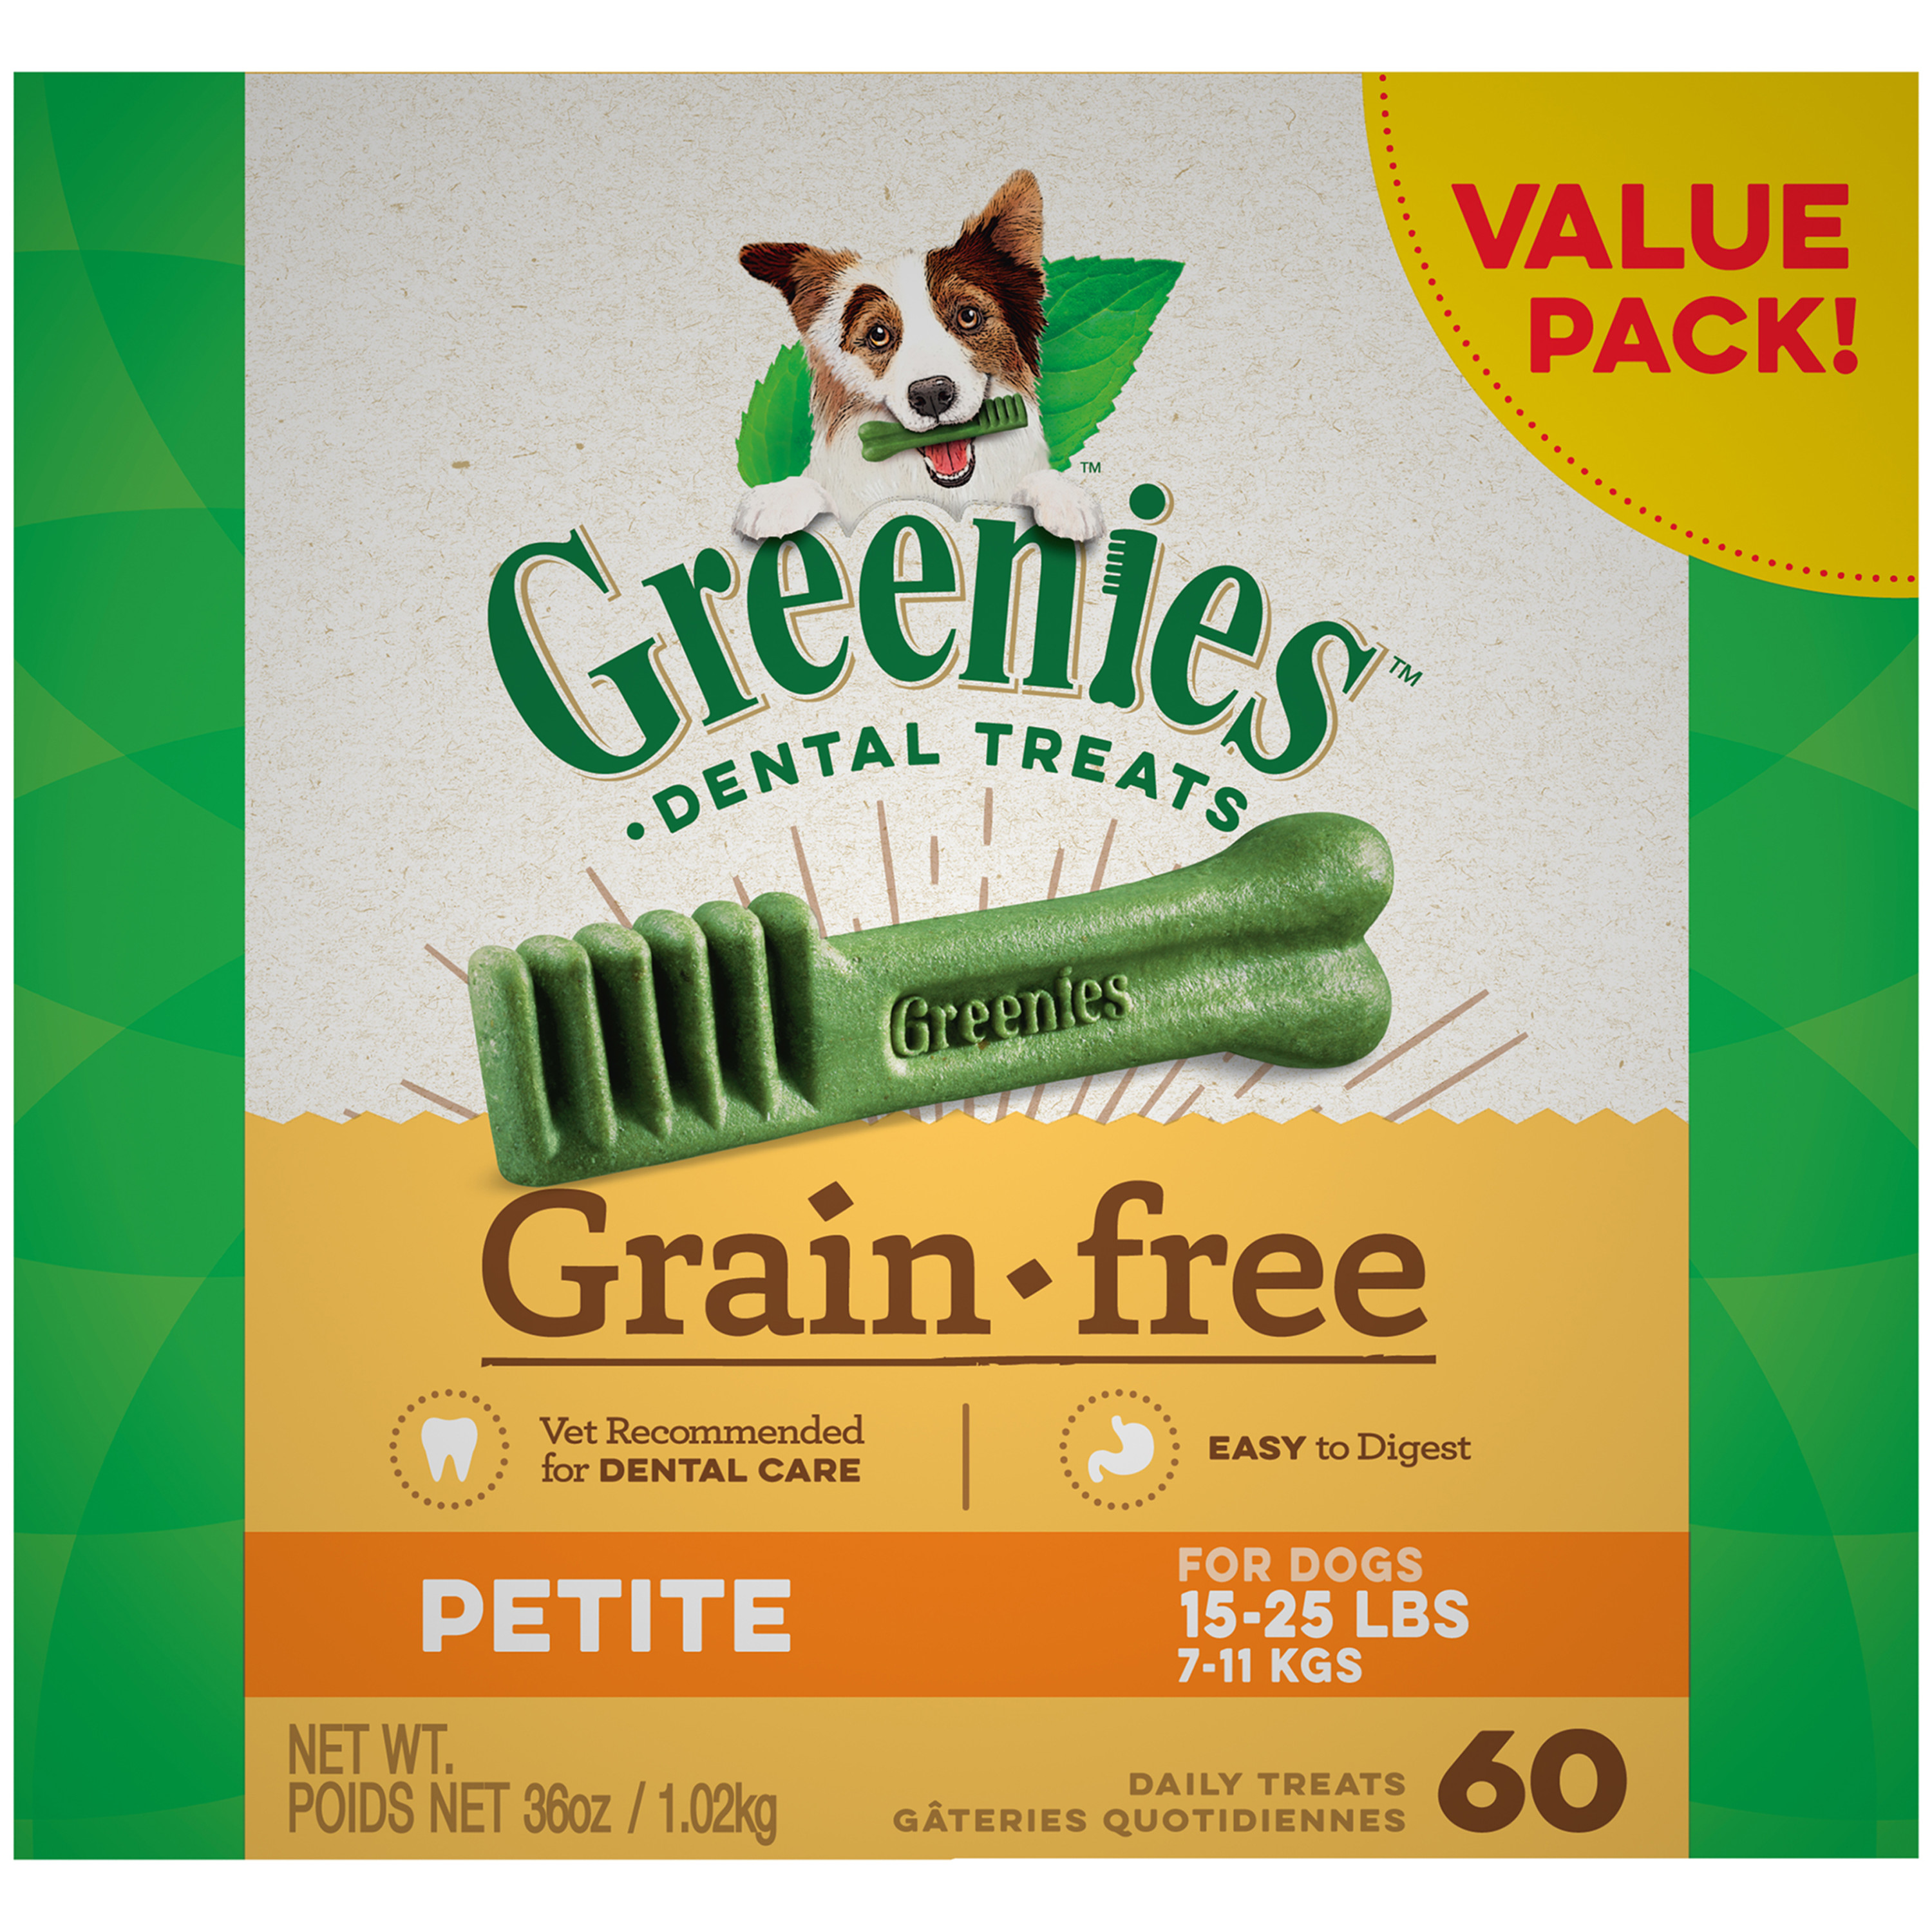 GREENIES Grain Free Petite Dental Dog Treats, 36 oz. Pack (60 Treats)